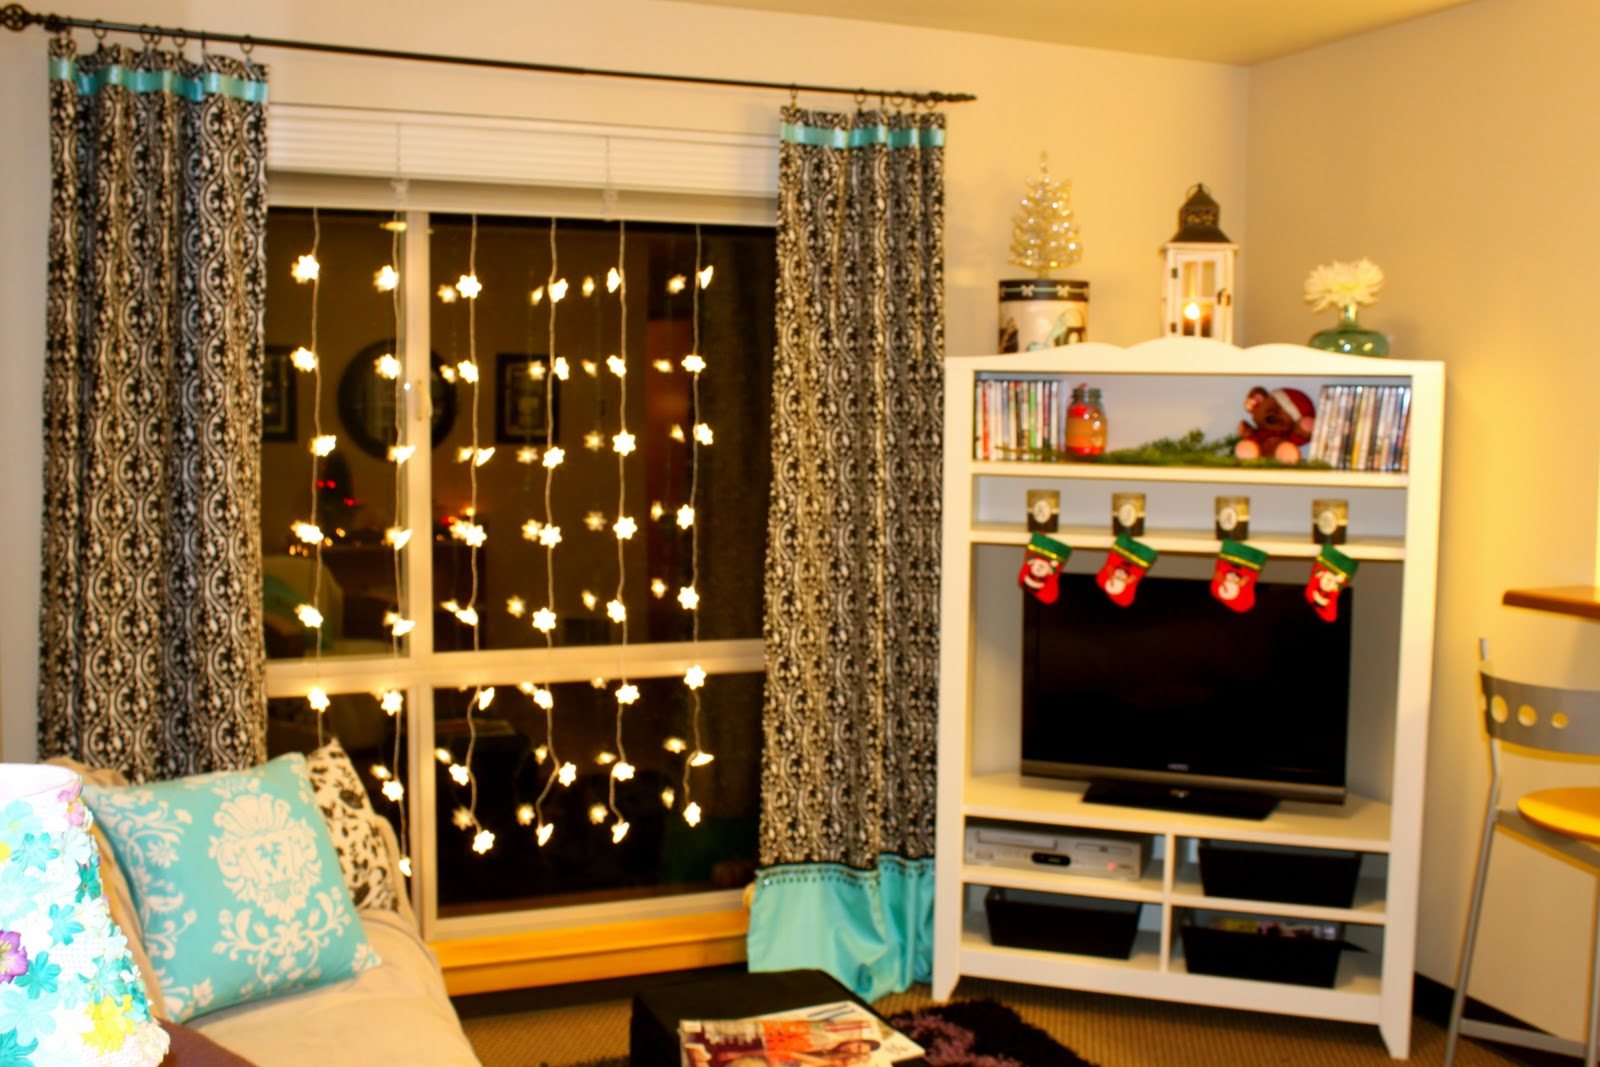 Easy Apartment Christmas Decorations  12743   House Decoration Ideas Featured Image of Easy Apartment Christmas Decorations